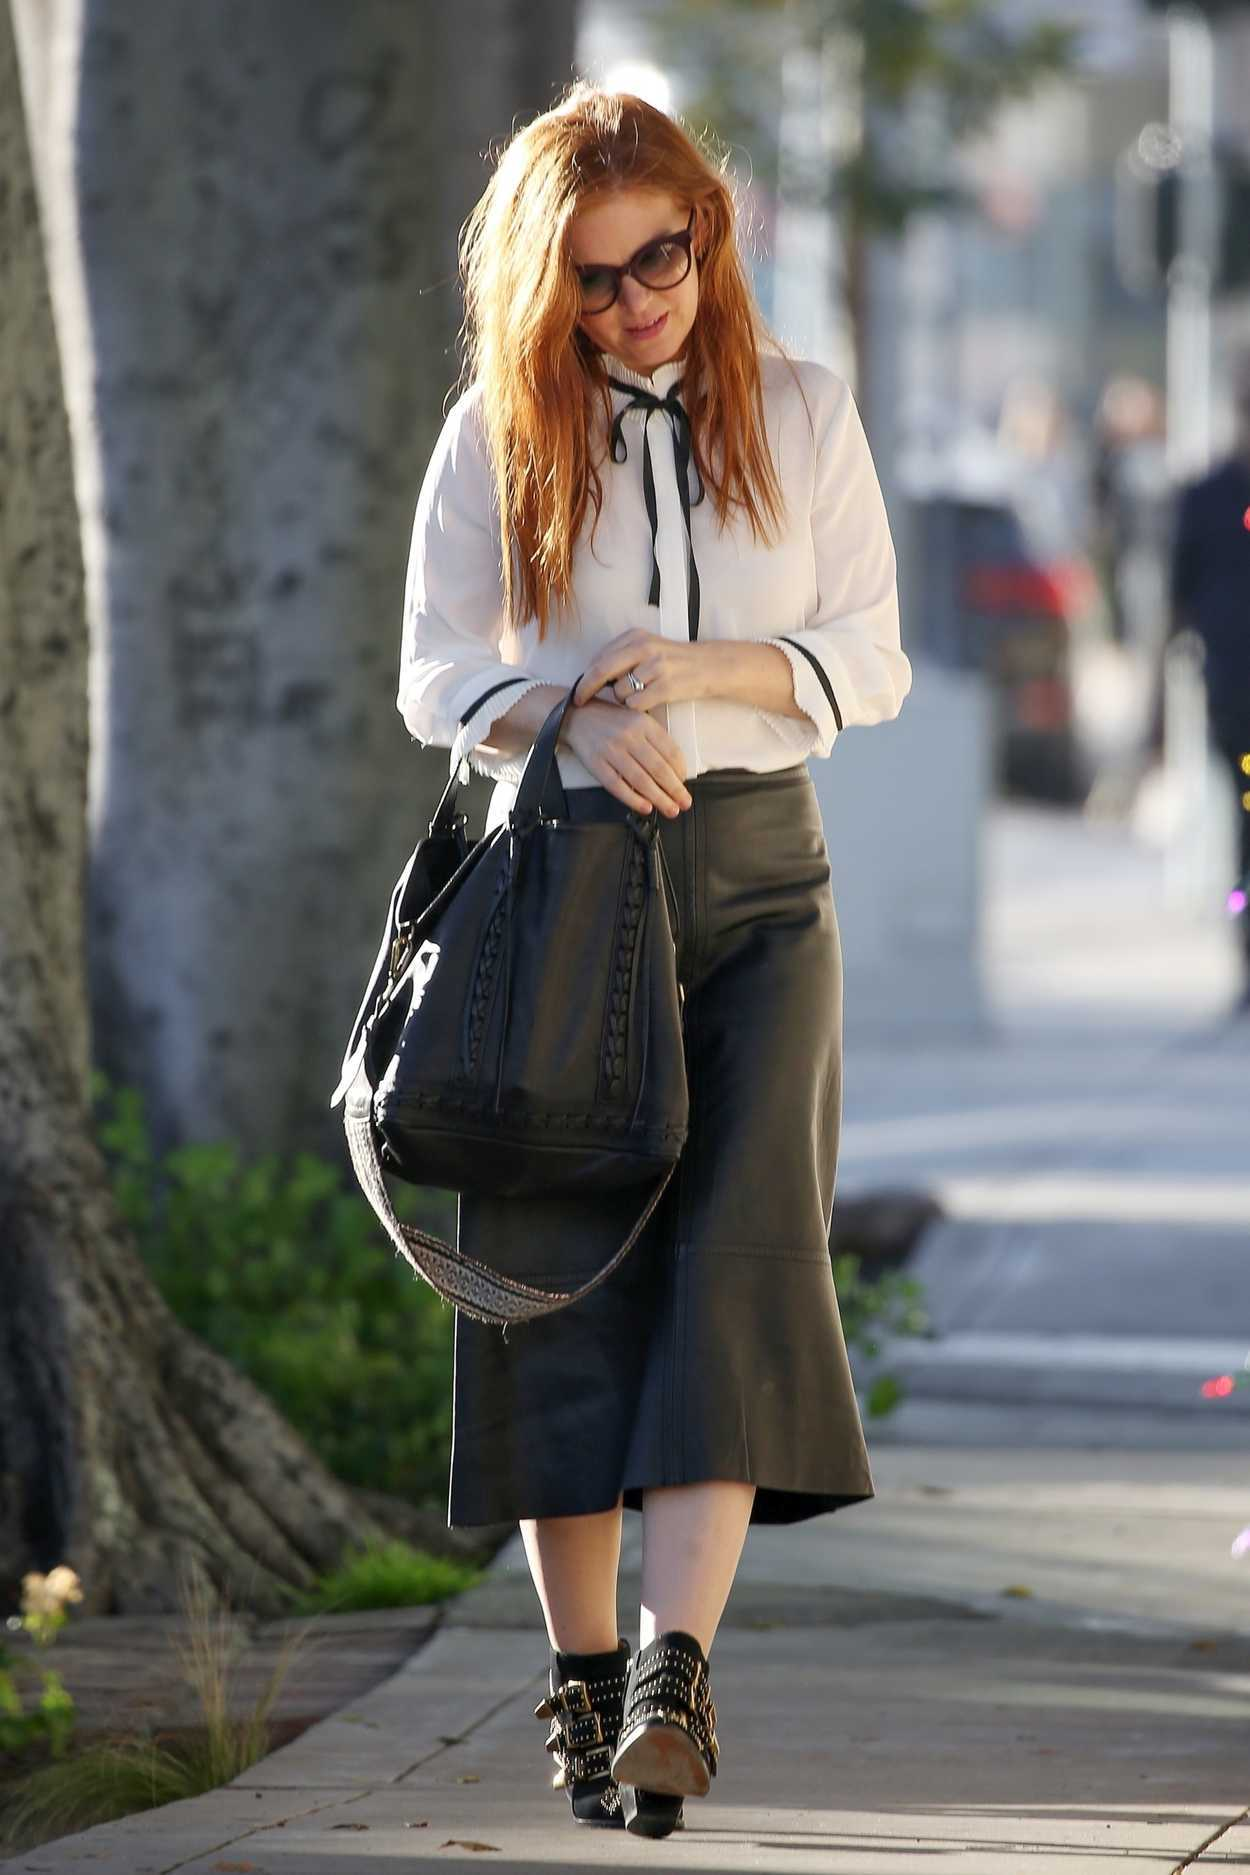 Isla Fisher In A Black Leather Skirt Was Seen Out In